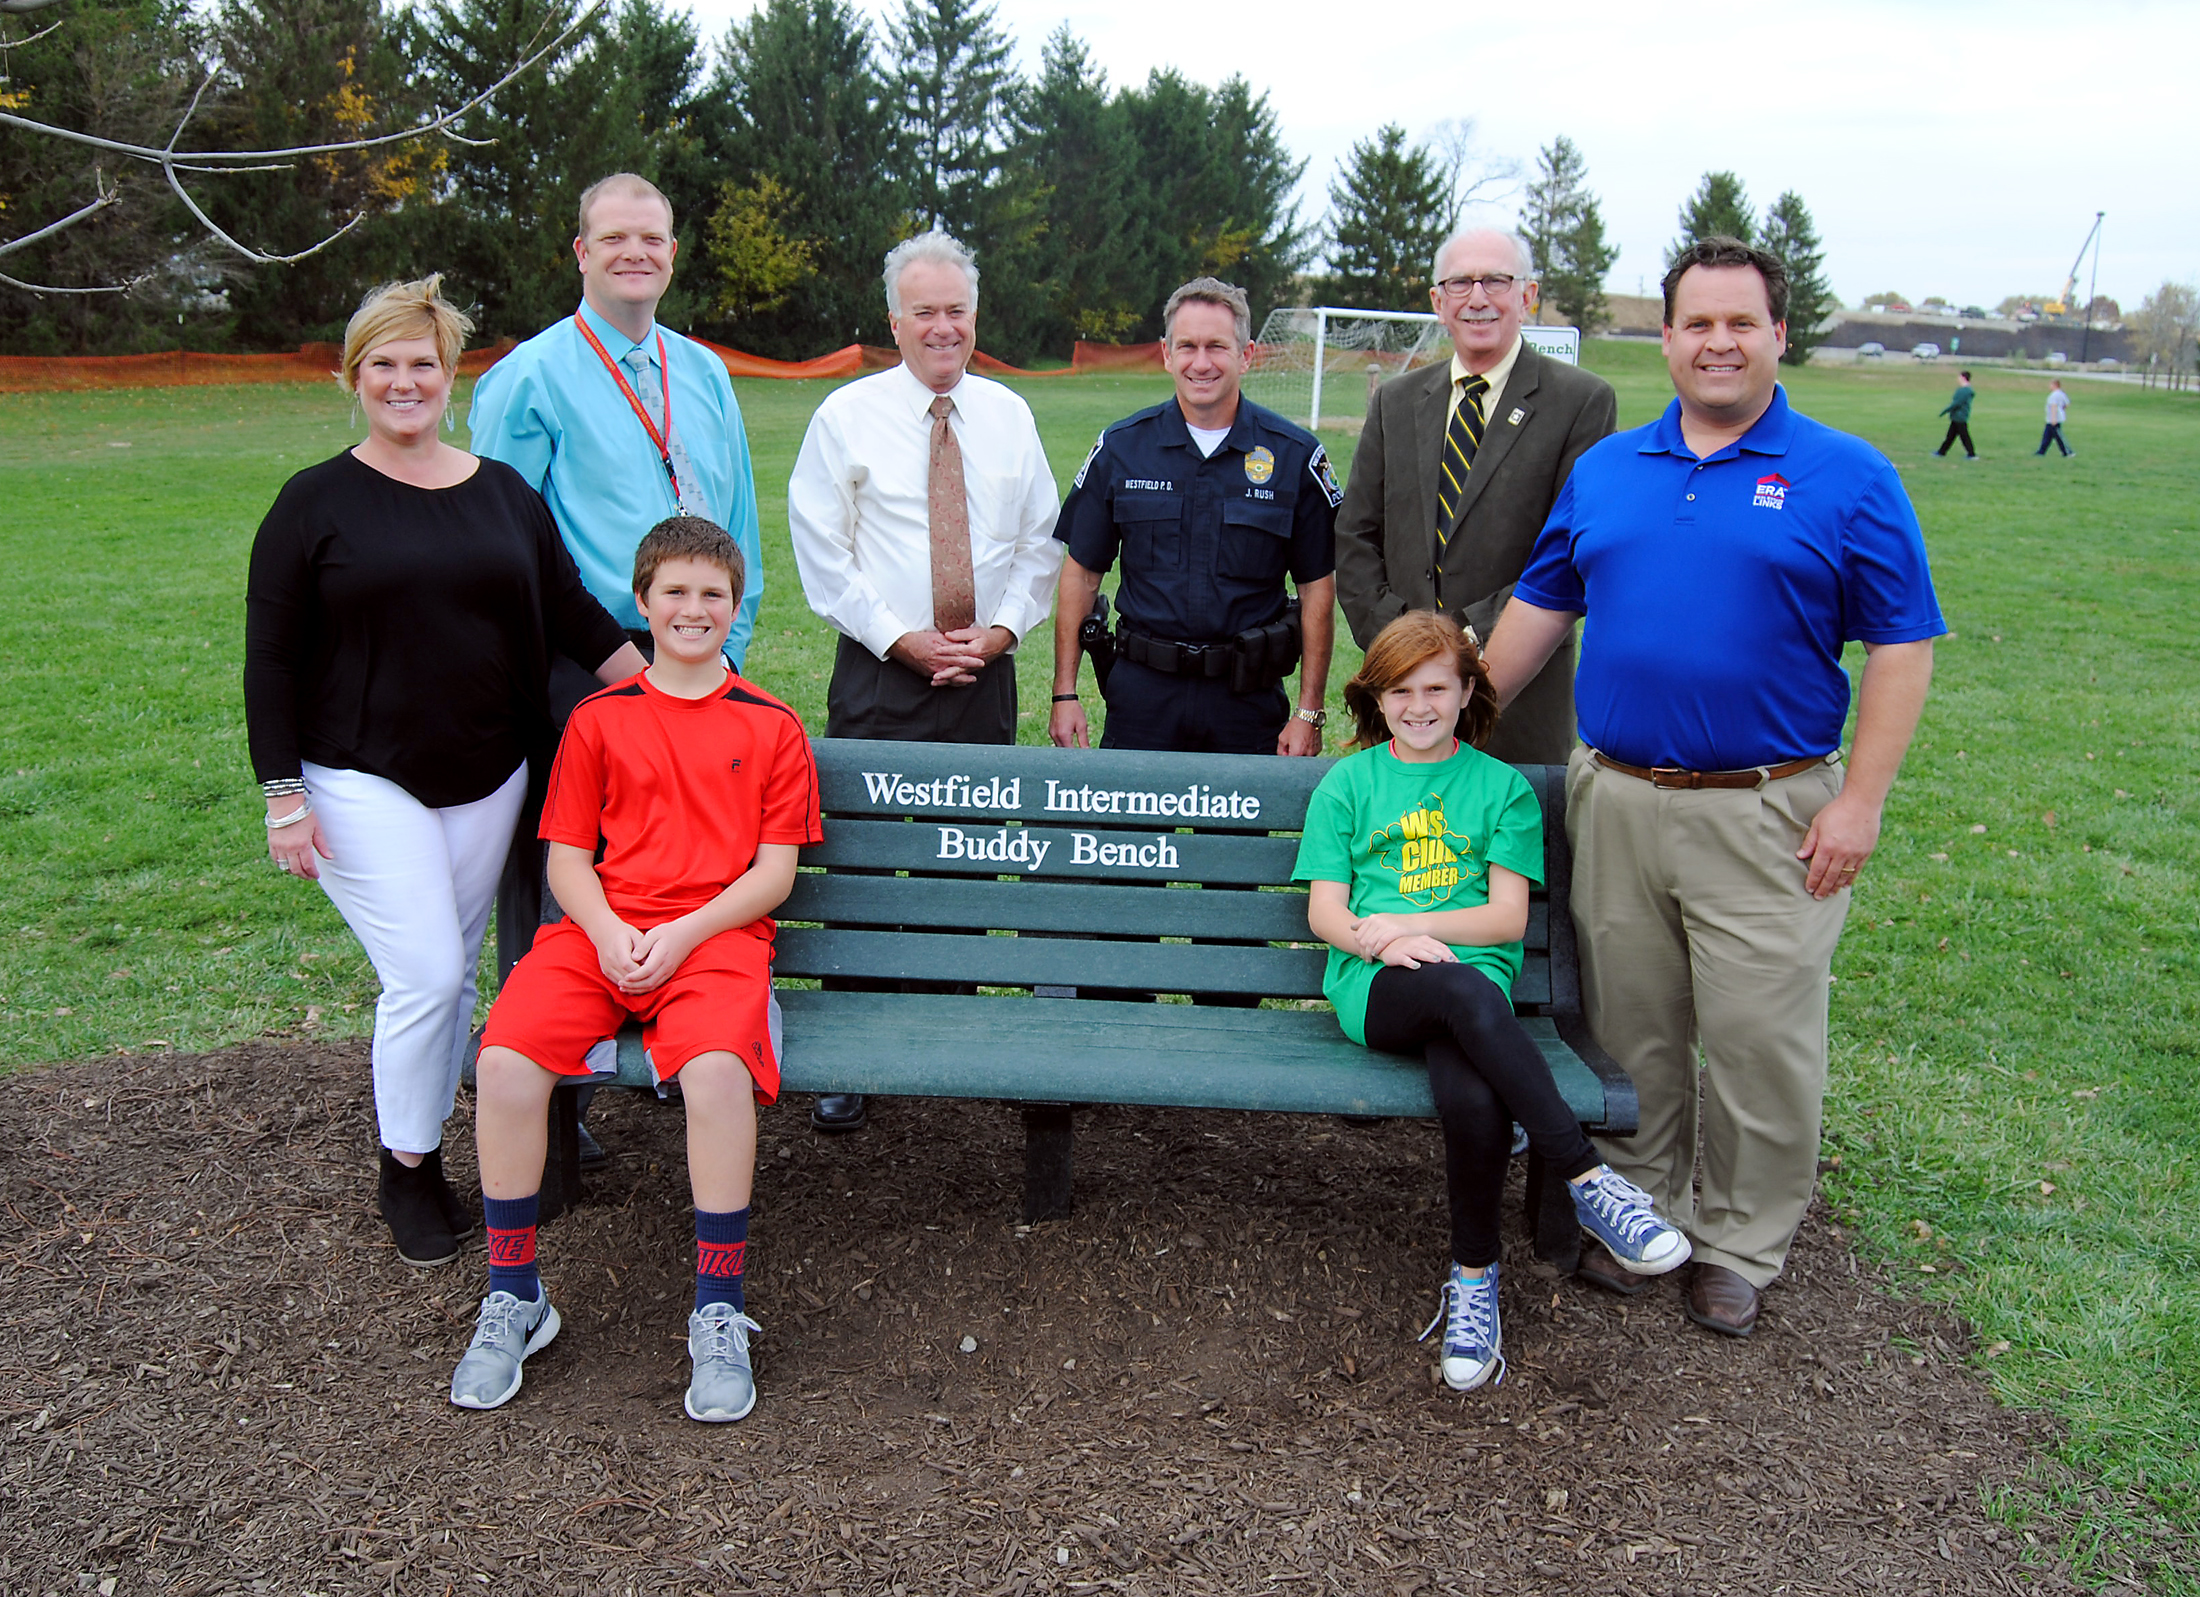 Family creates safe area with Buddy Benches at Westfield Washington Schools